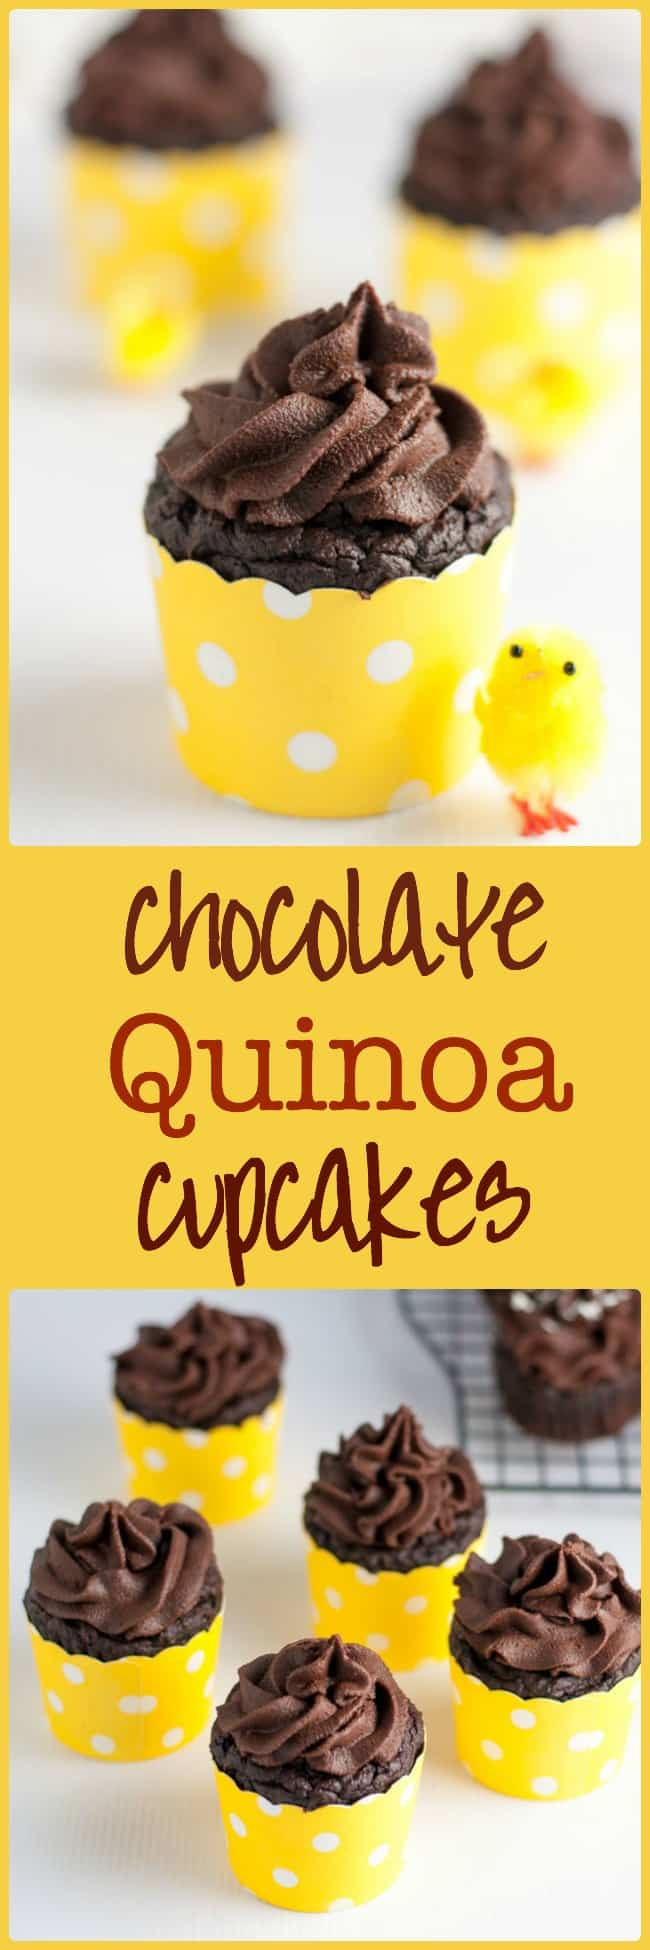 Even Healthier Chocolate Quinoa Cupcakes. An updated, healthier version of the traditional recipe, now gluten-free, and refined sugar-free too! Rich chocolate flavour, topped with Whipped Chocolate Coconut Milk frosting. Perfect for Easter treats!